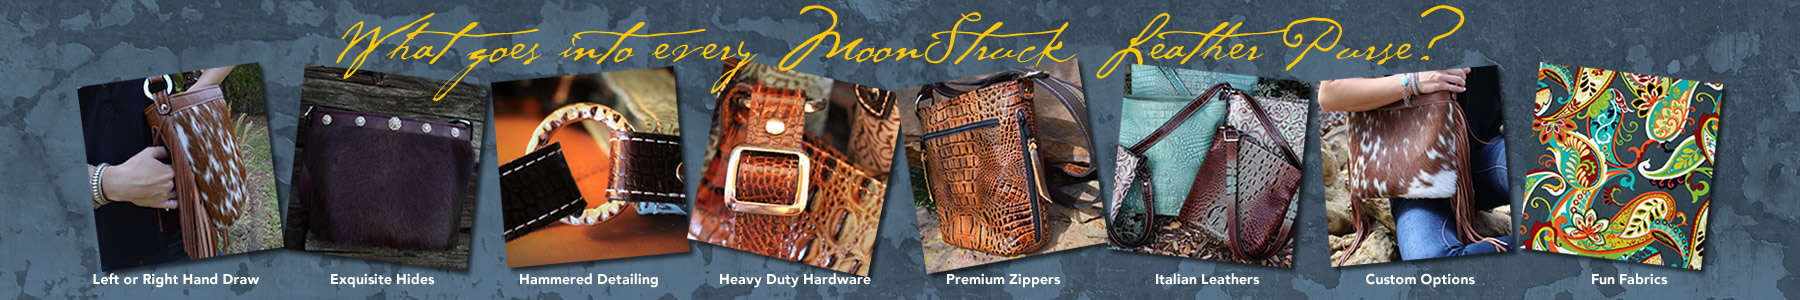 Only the finest materials and workmanship go into Moonstruck Leather's concealed handgun purses.